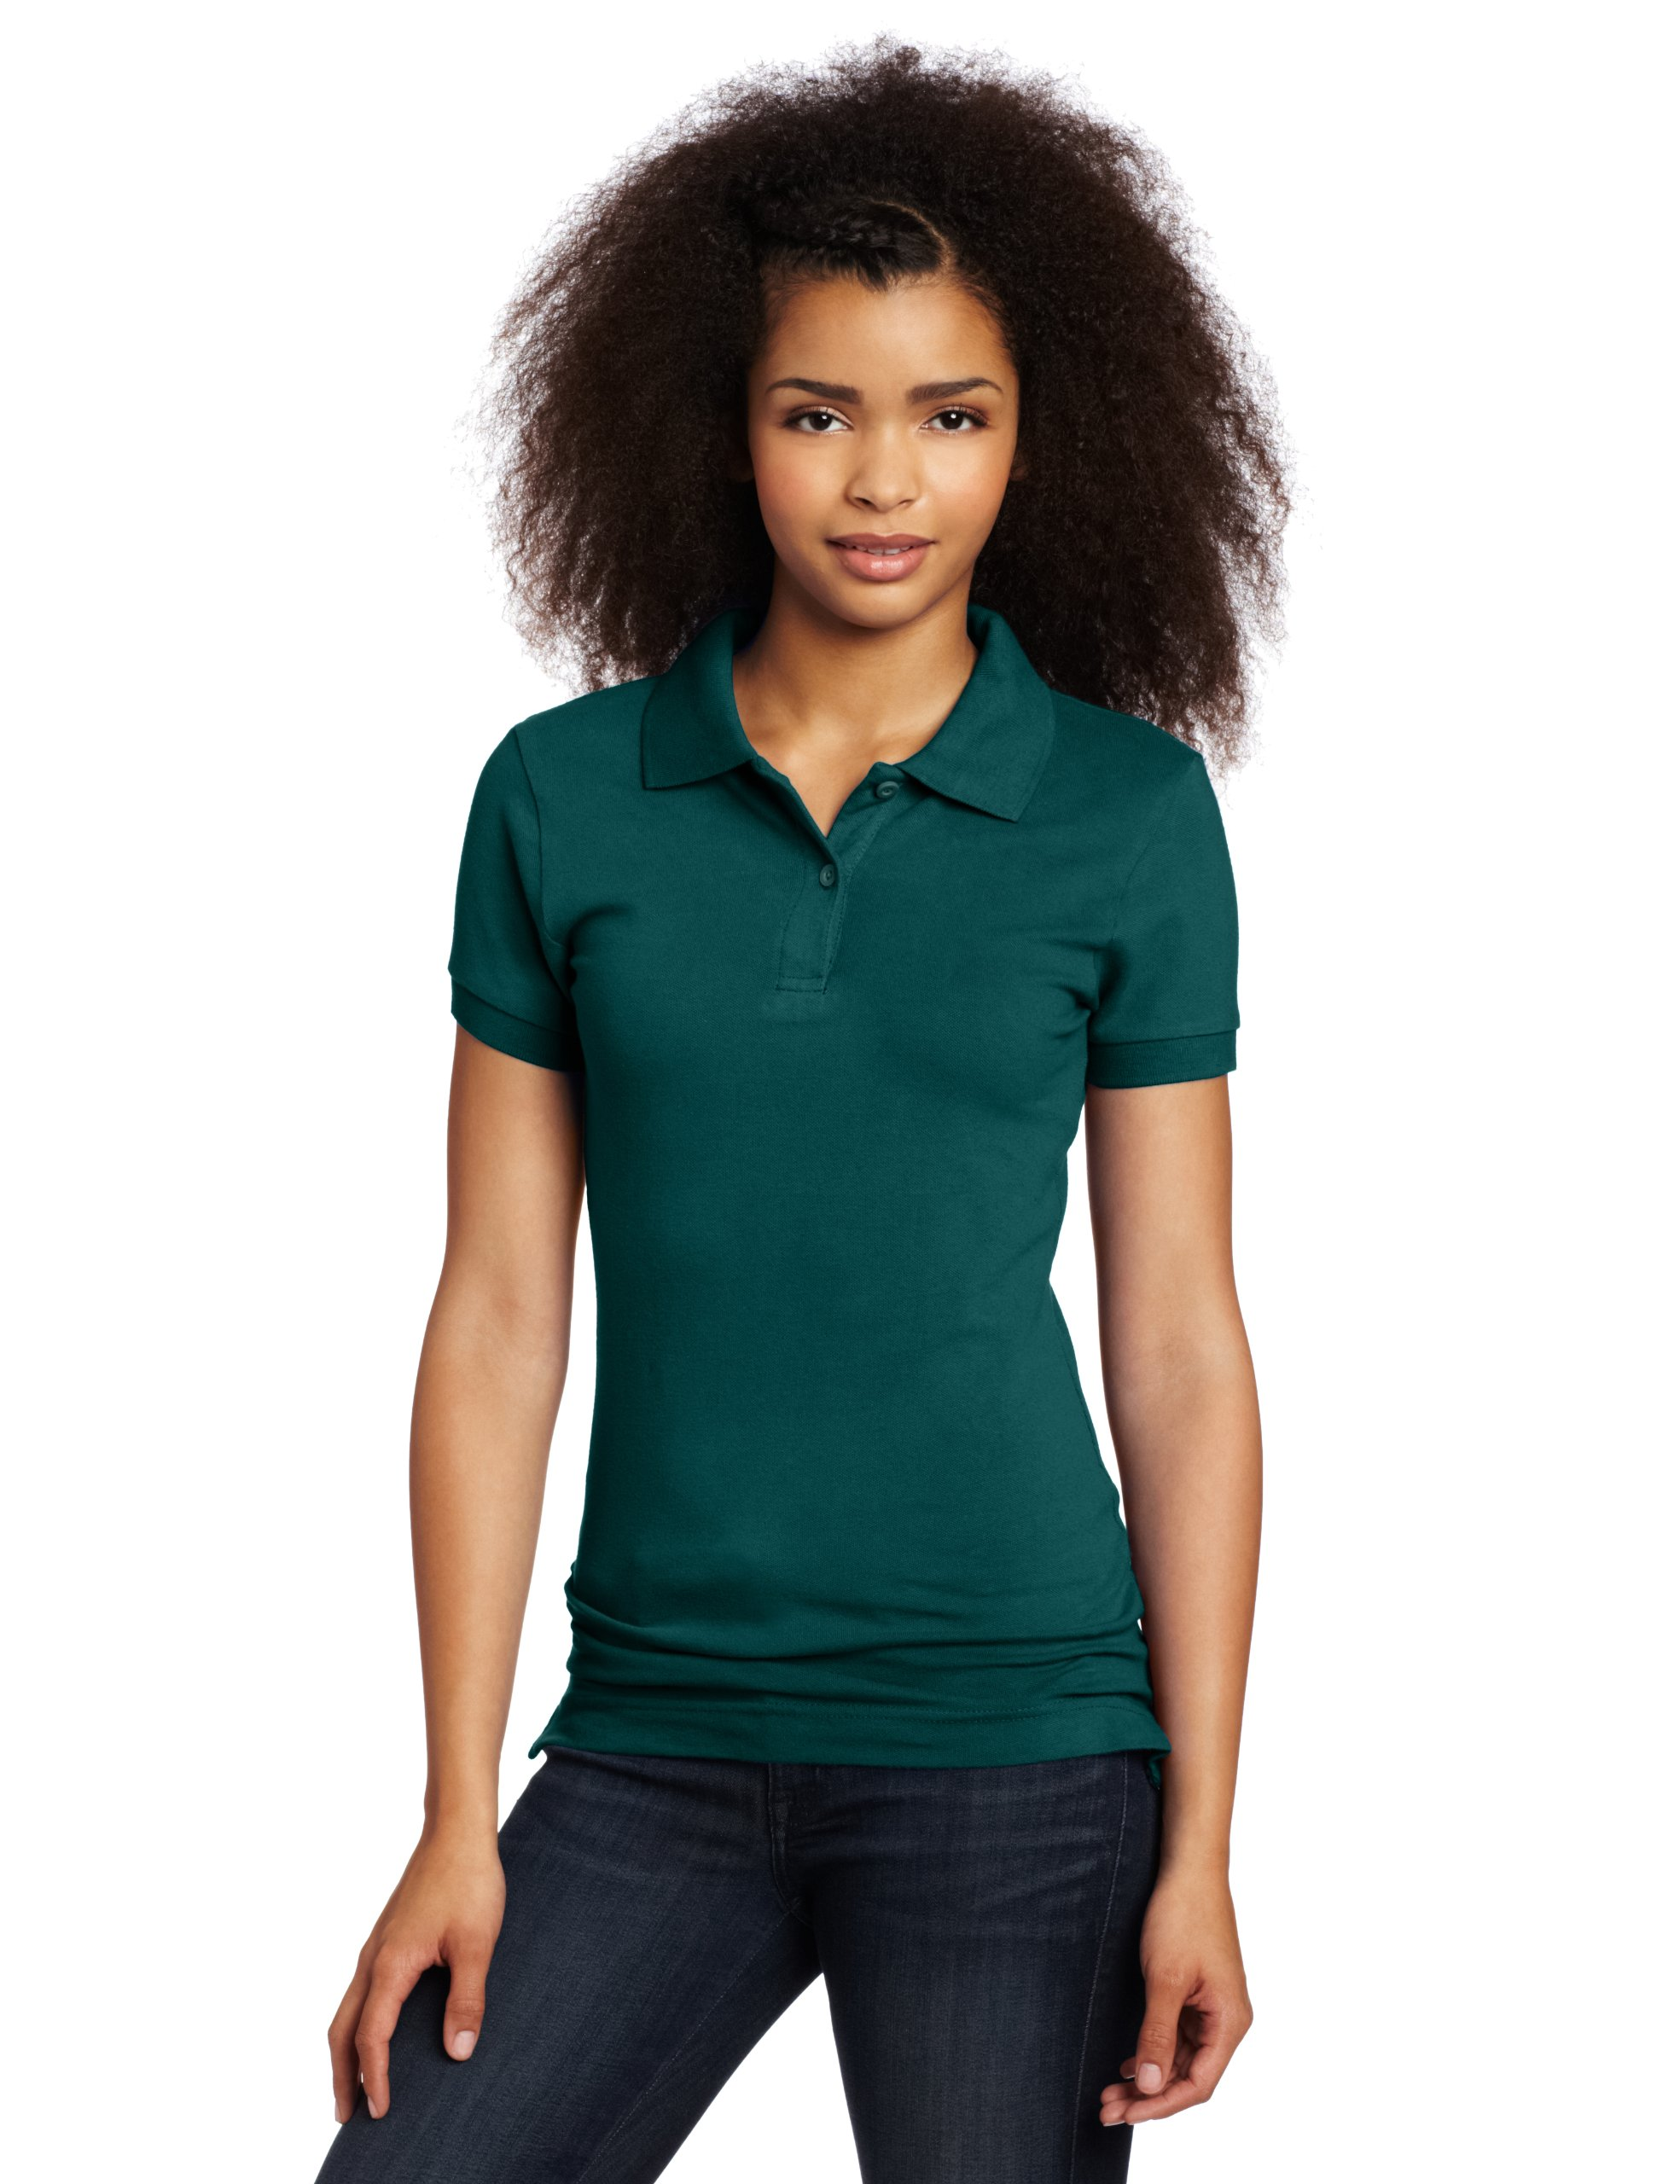 Lee Uniforms Juniors Stretch Pique Polo, Hunter Green, Large by LEE